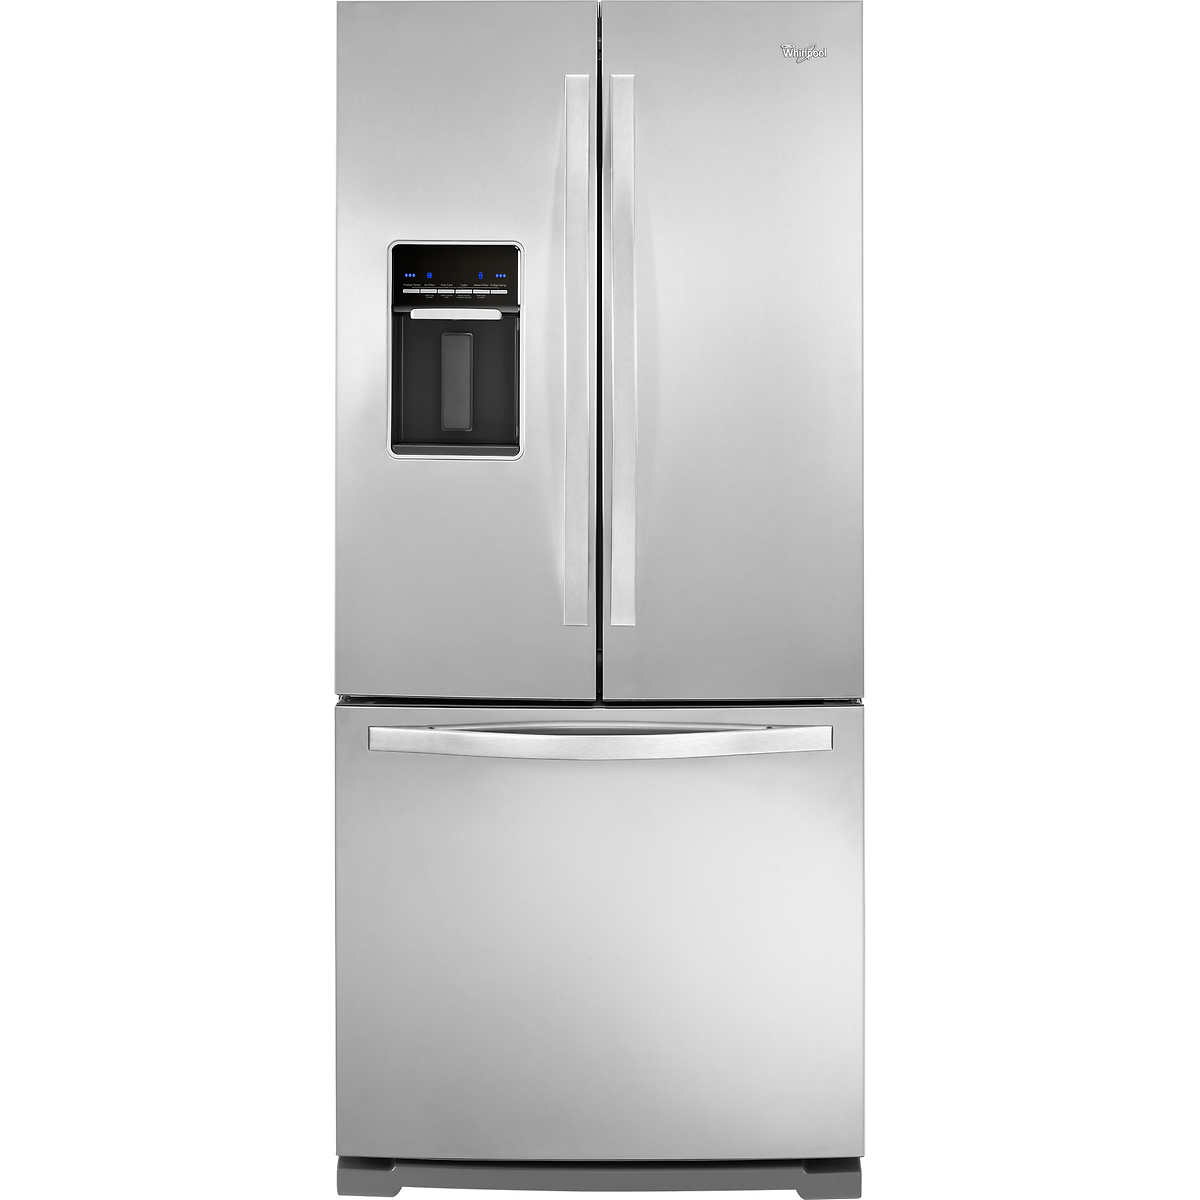 Whirlpool white ice costco canada - Whirlpool 19 7cuft French Door Refrigerator Stainless Steel 30 Wide With Exterior Water Dispenser